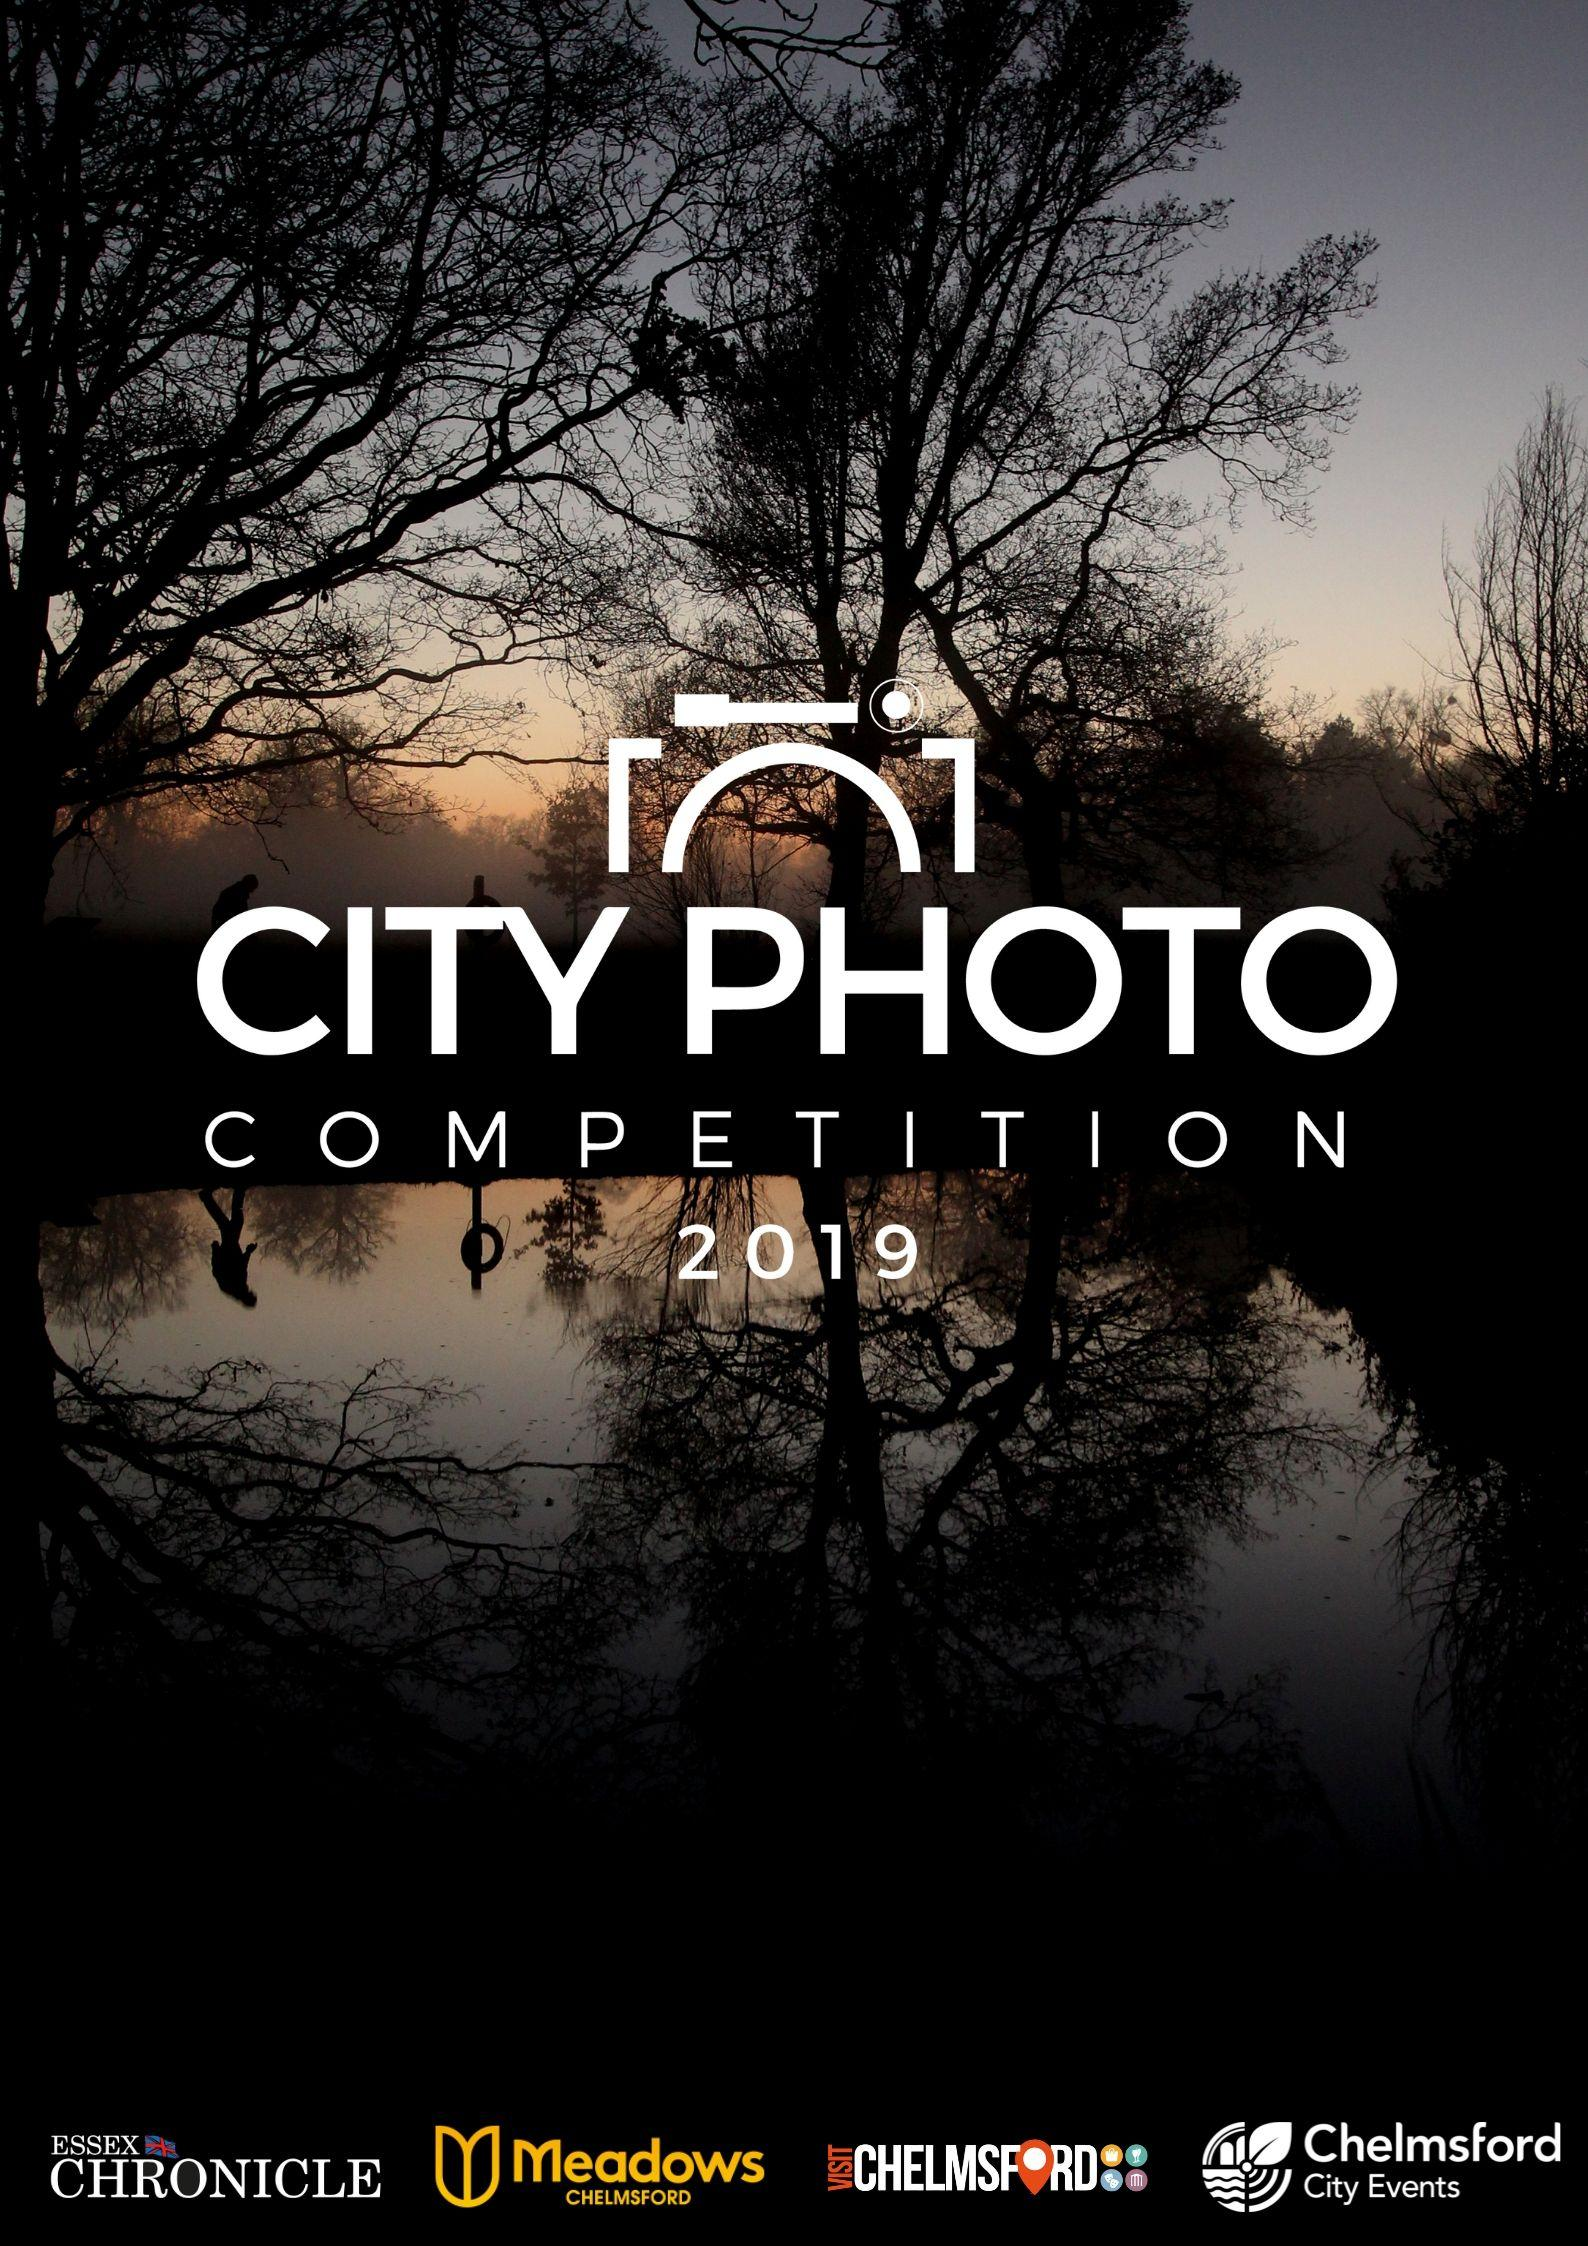 Chelmsford City Photography Competition